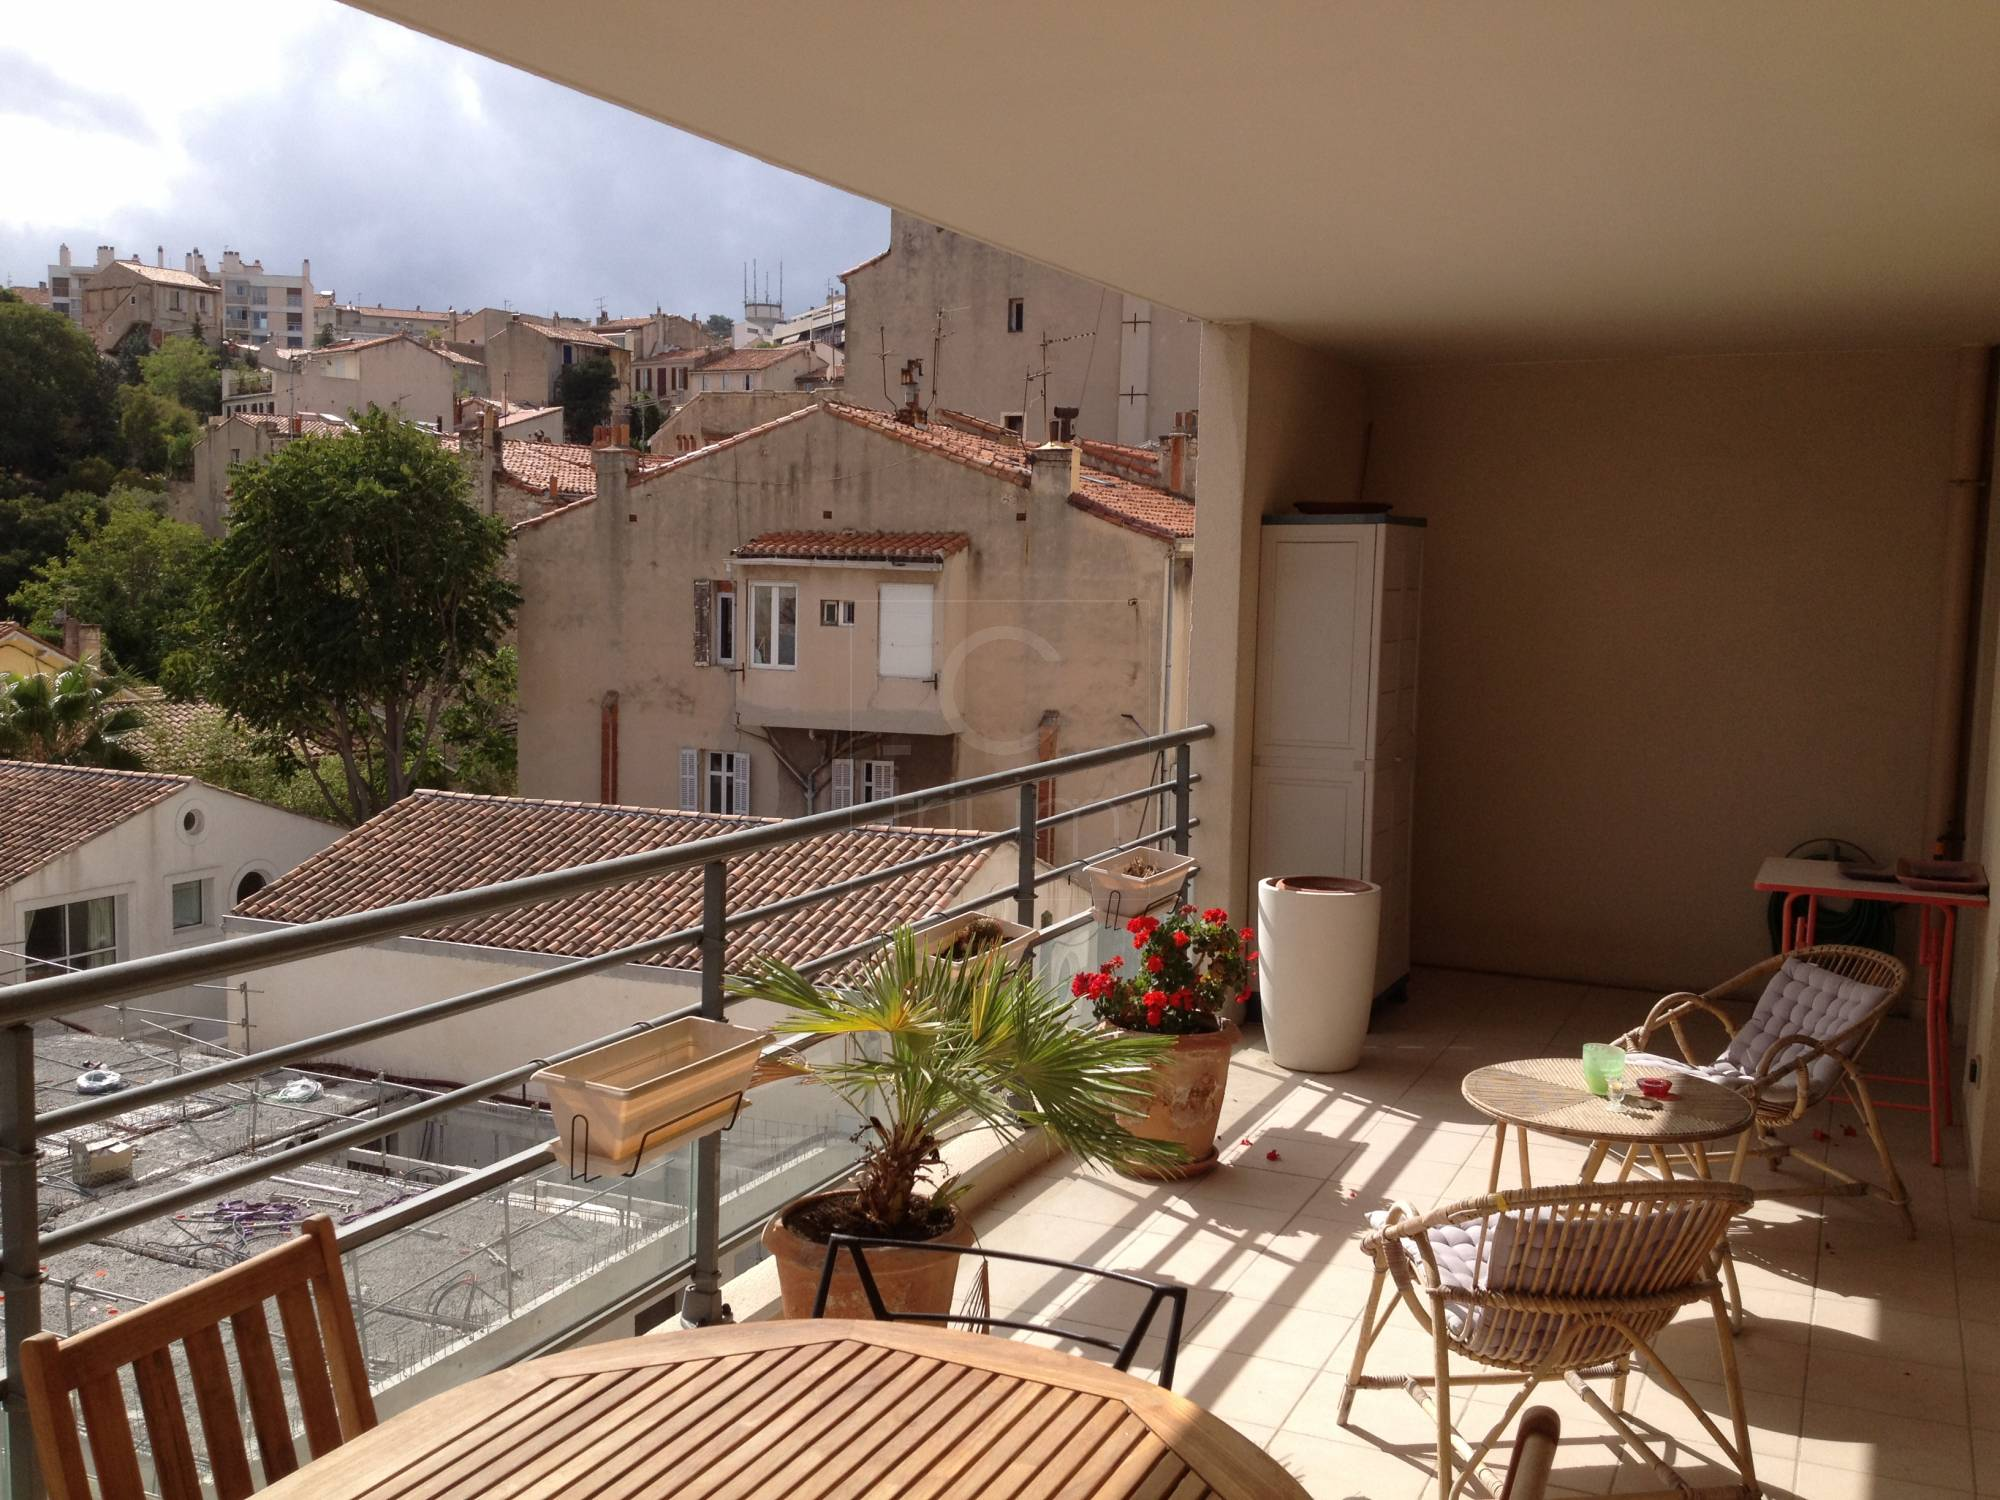 Vente appartement t4 f4 marseille 13006 proximit rue for Appartement atypique 13006